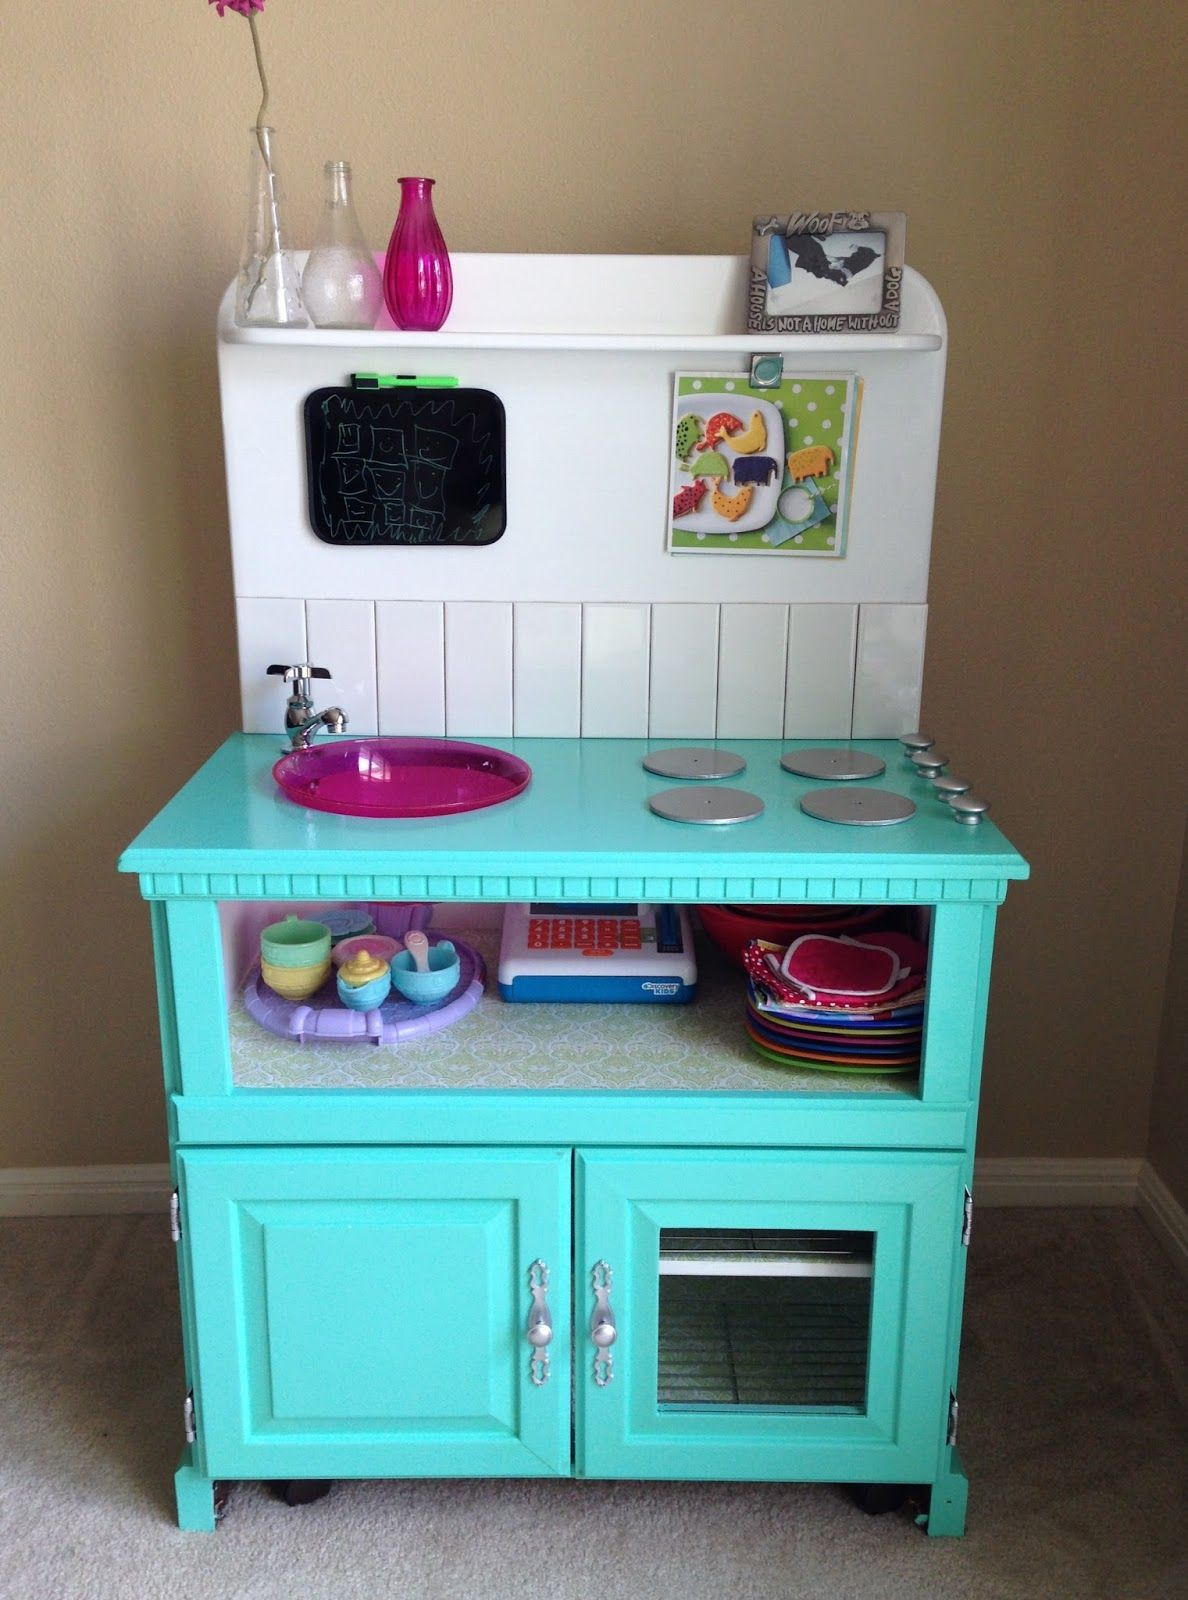 Wooden Toy Kitchens For Toddlers